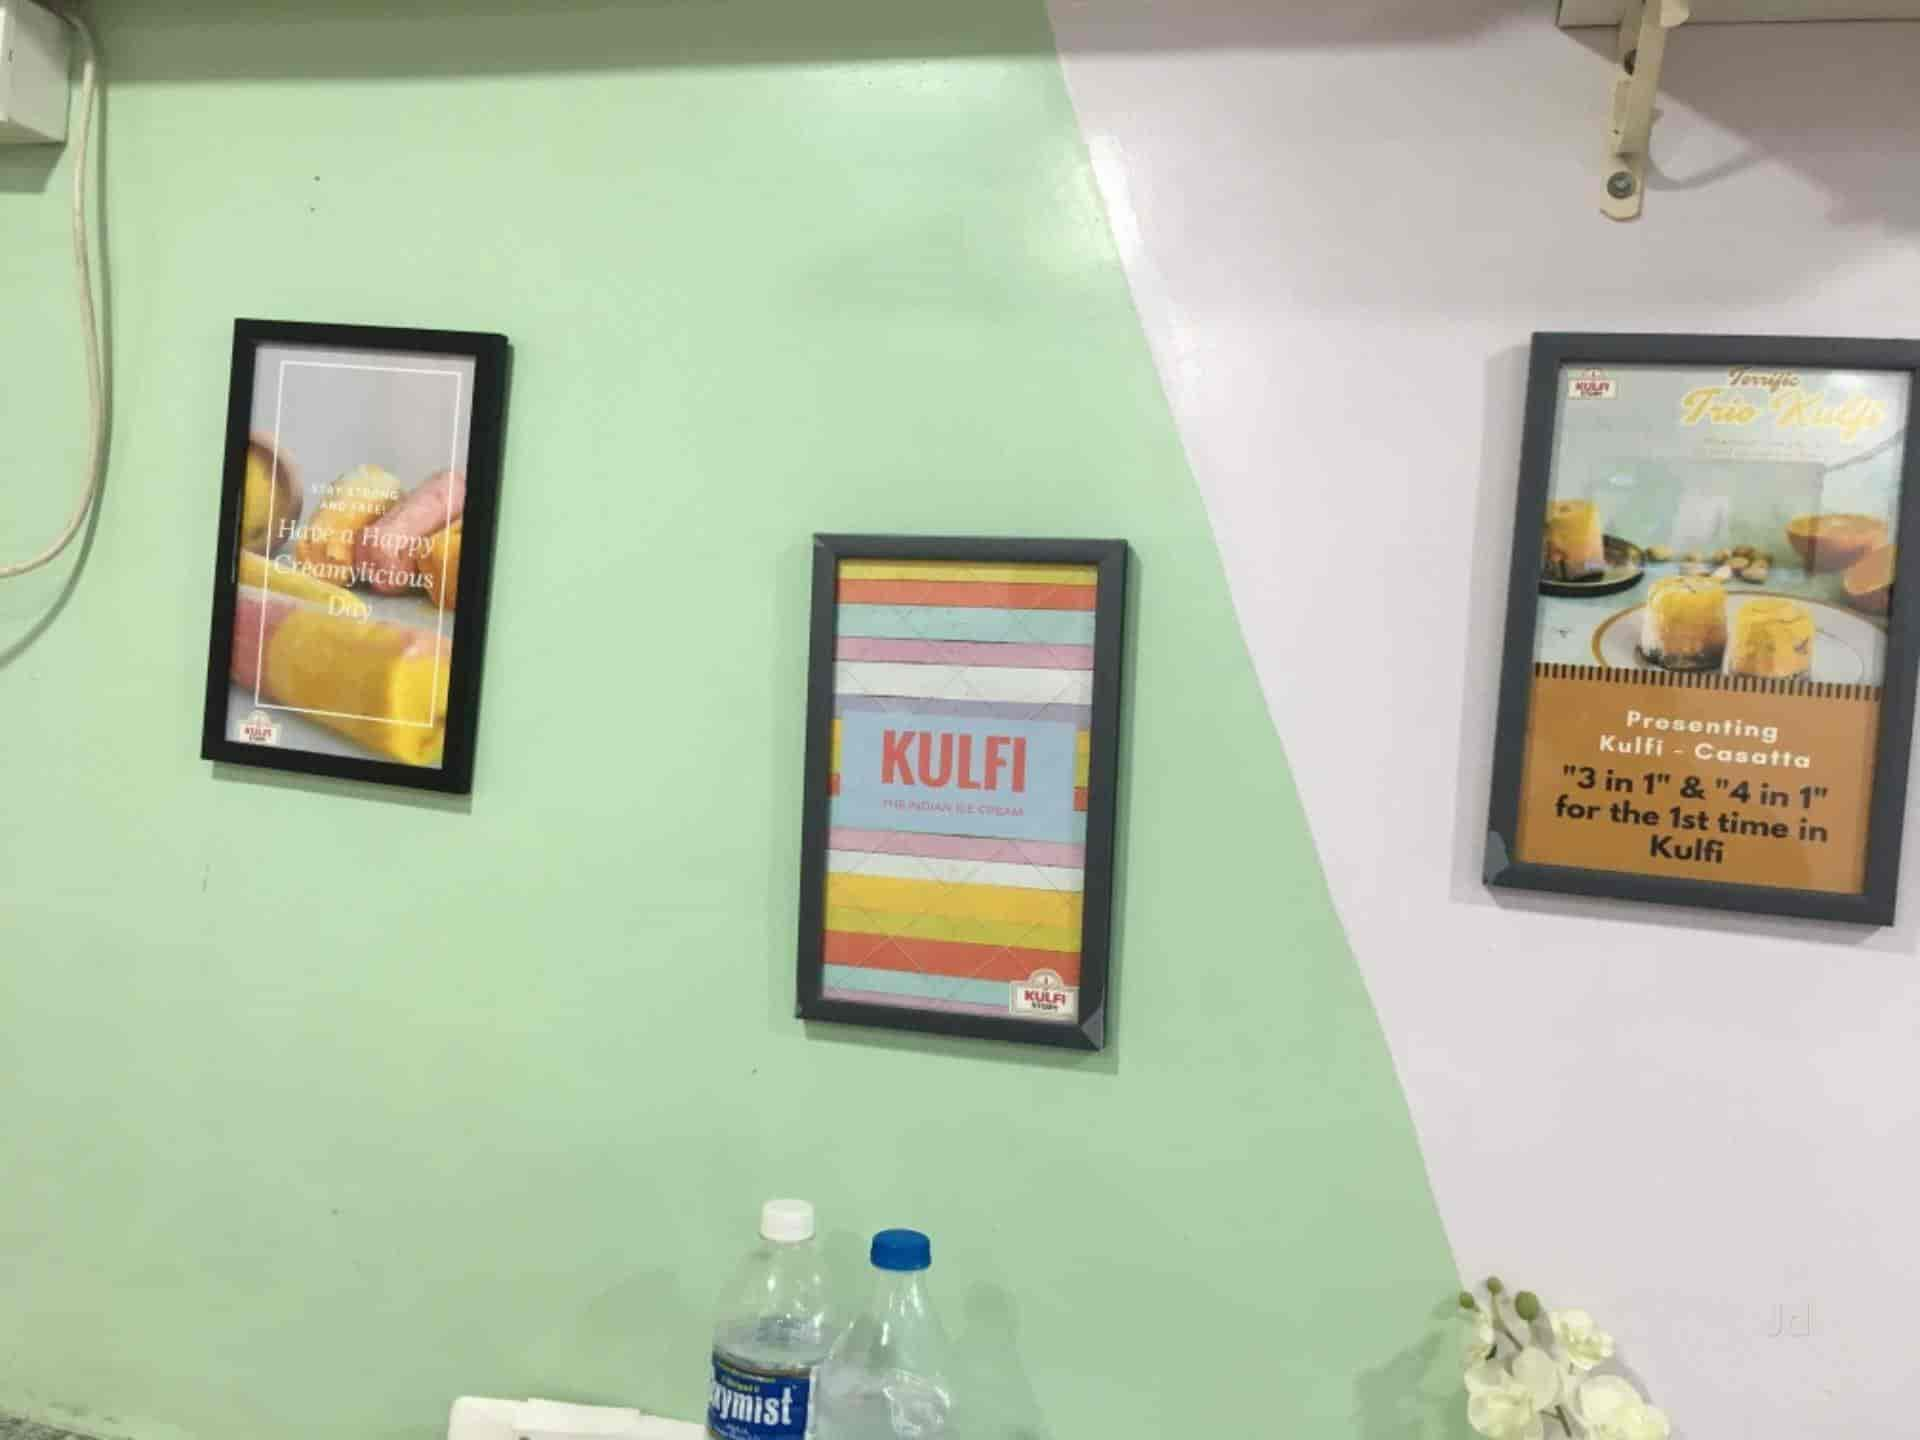 Kulfi Story Photos, Wakad, Pune- Pictures & Images Gallery - Justdial